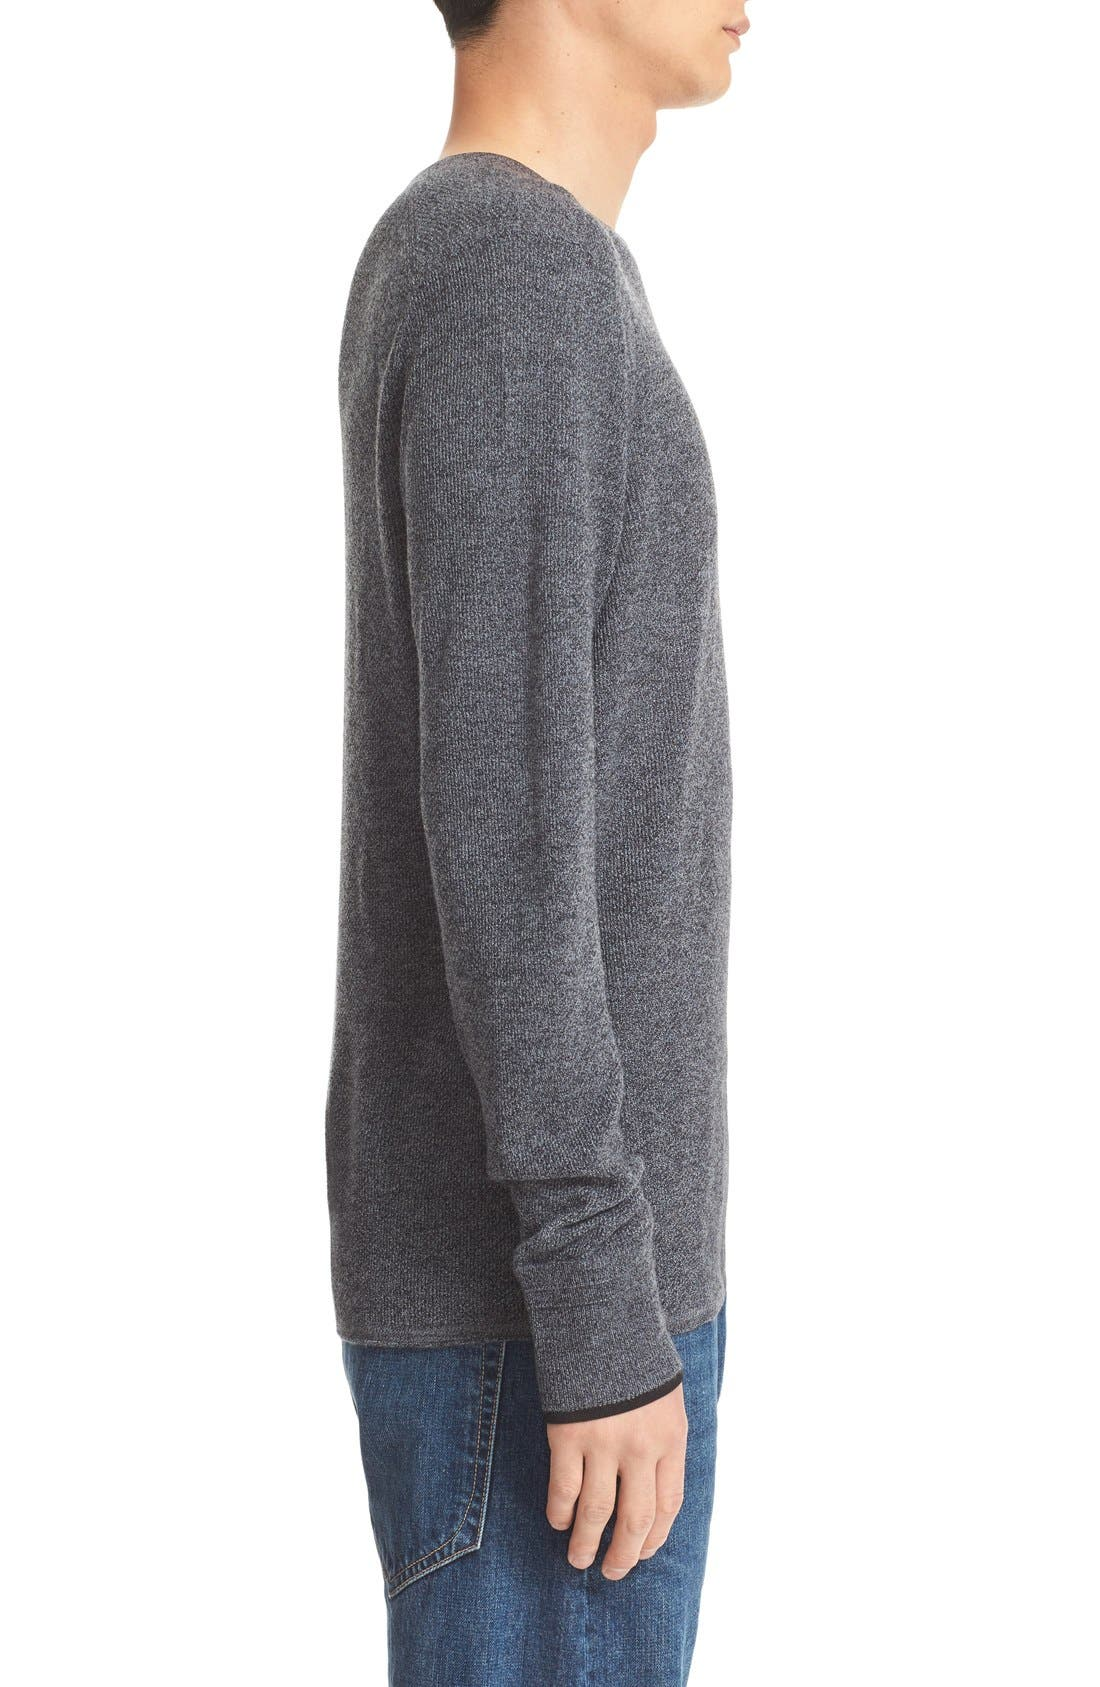 'Giles' Lightweight Merino Wool Pullover,                             Alternate thumbnail 3, color,                             Charcoal